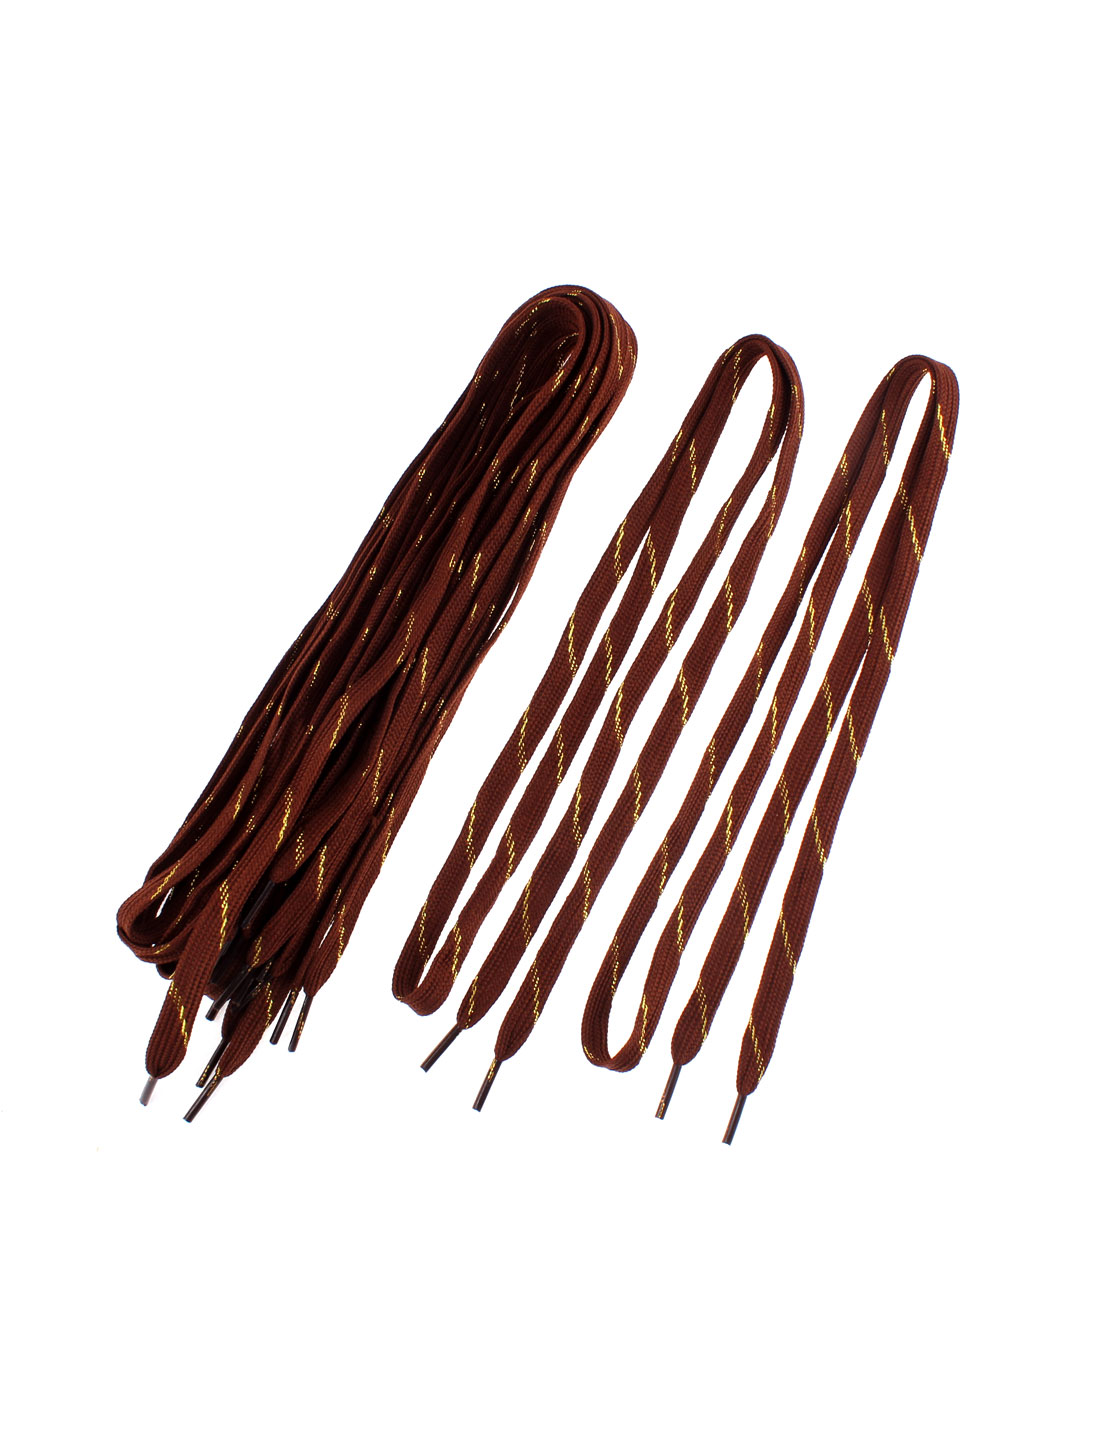 Unisex Sports Leisure Shoes Flat Shoestring Shoelaces Chocolate Color 5 Pairs